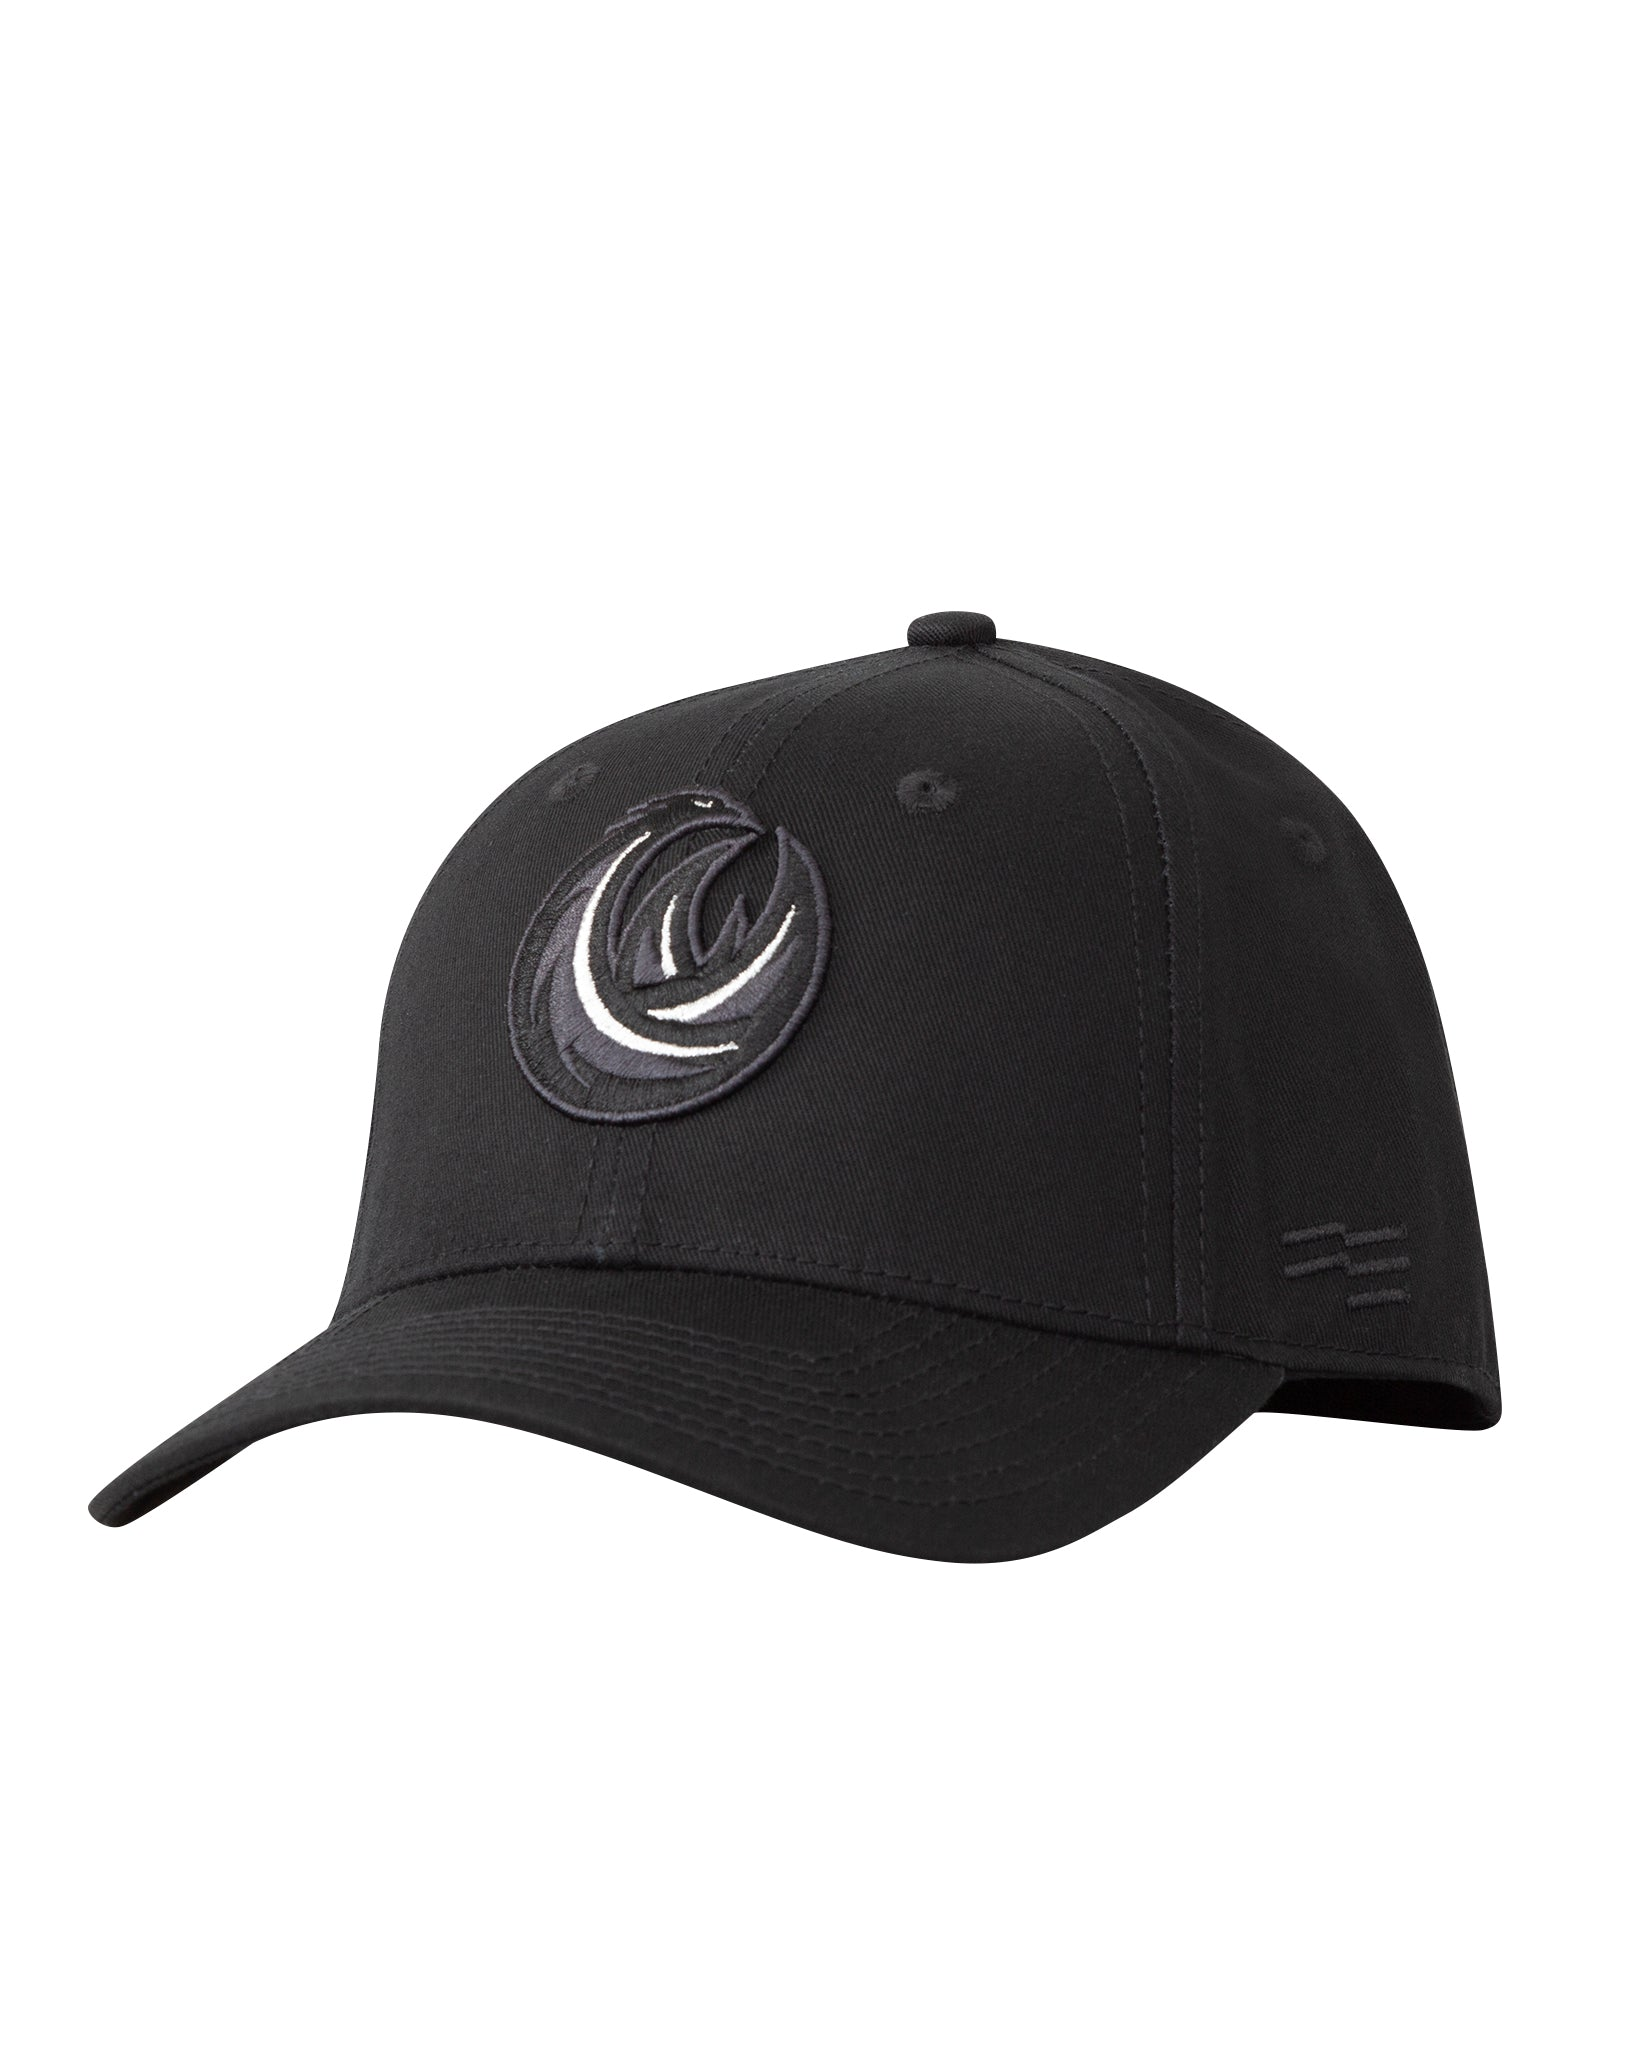 S.E. Melbourne Phoenix Black on Black Premium Curved Peak Cap